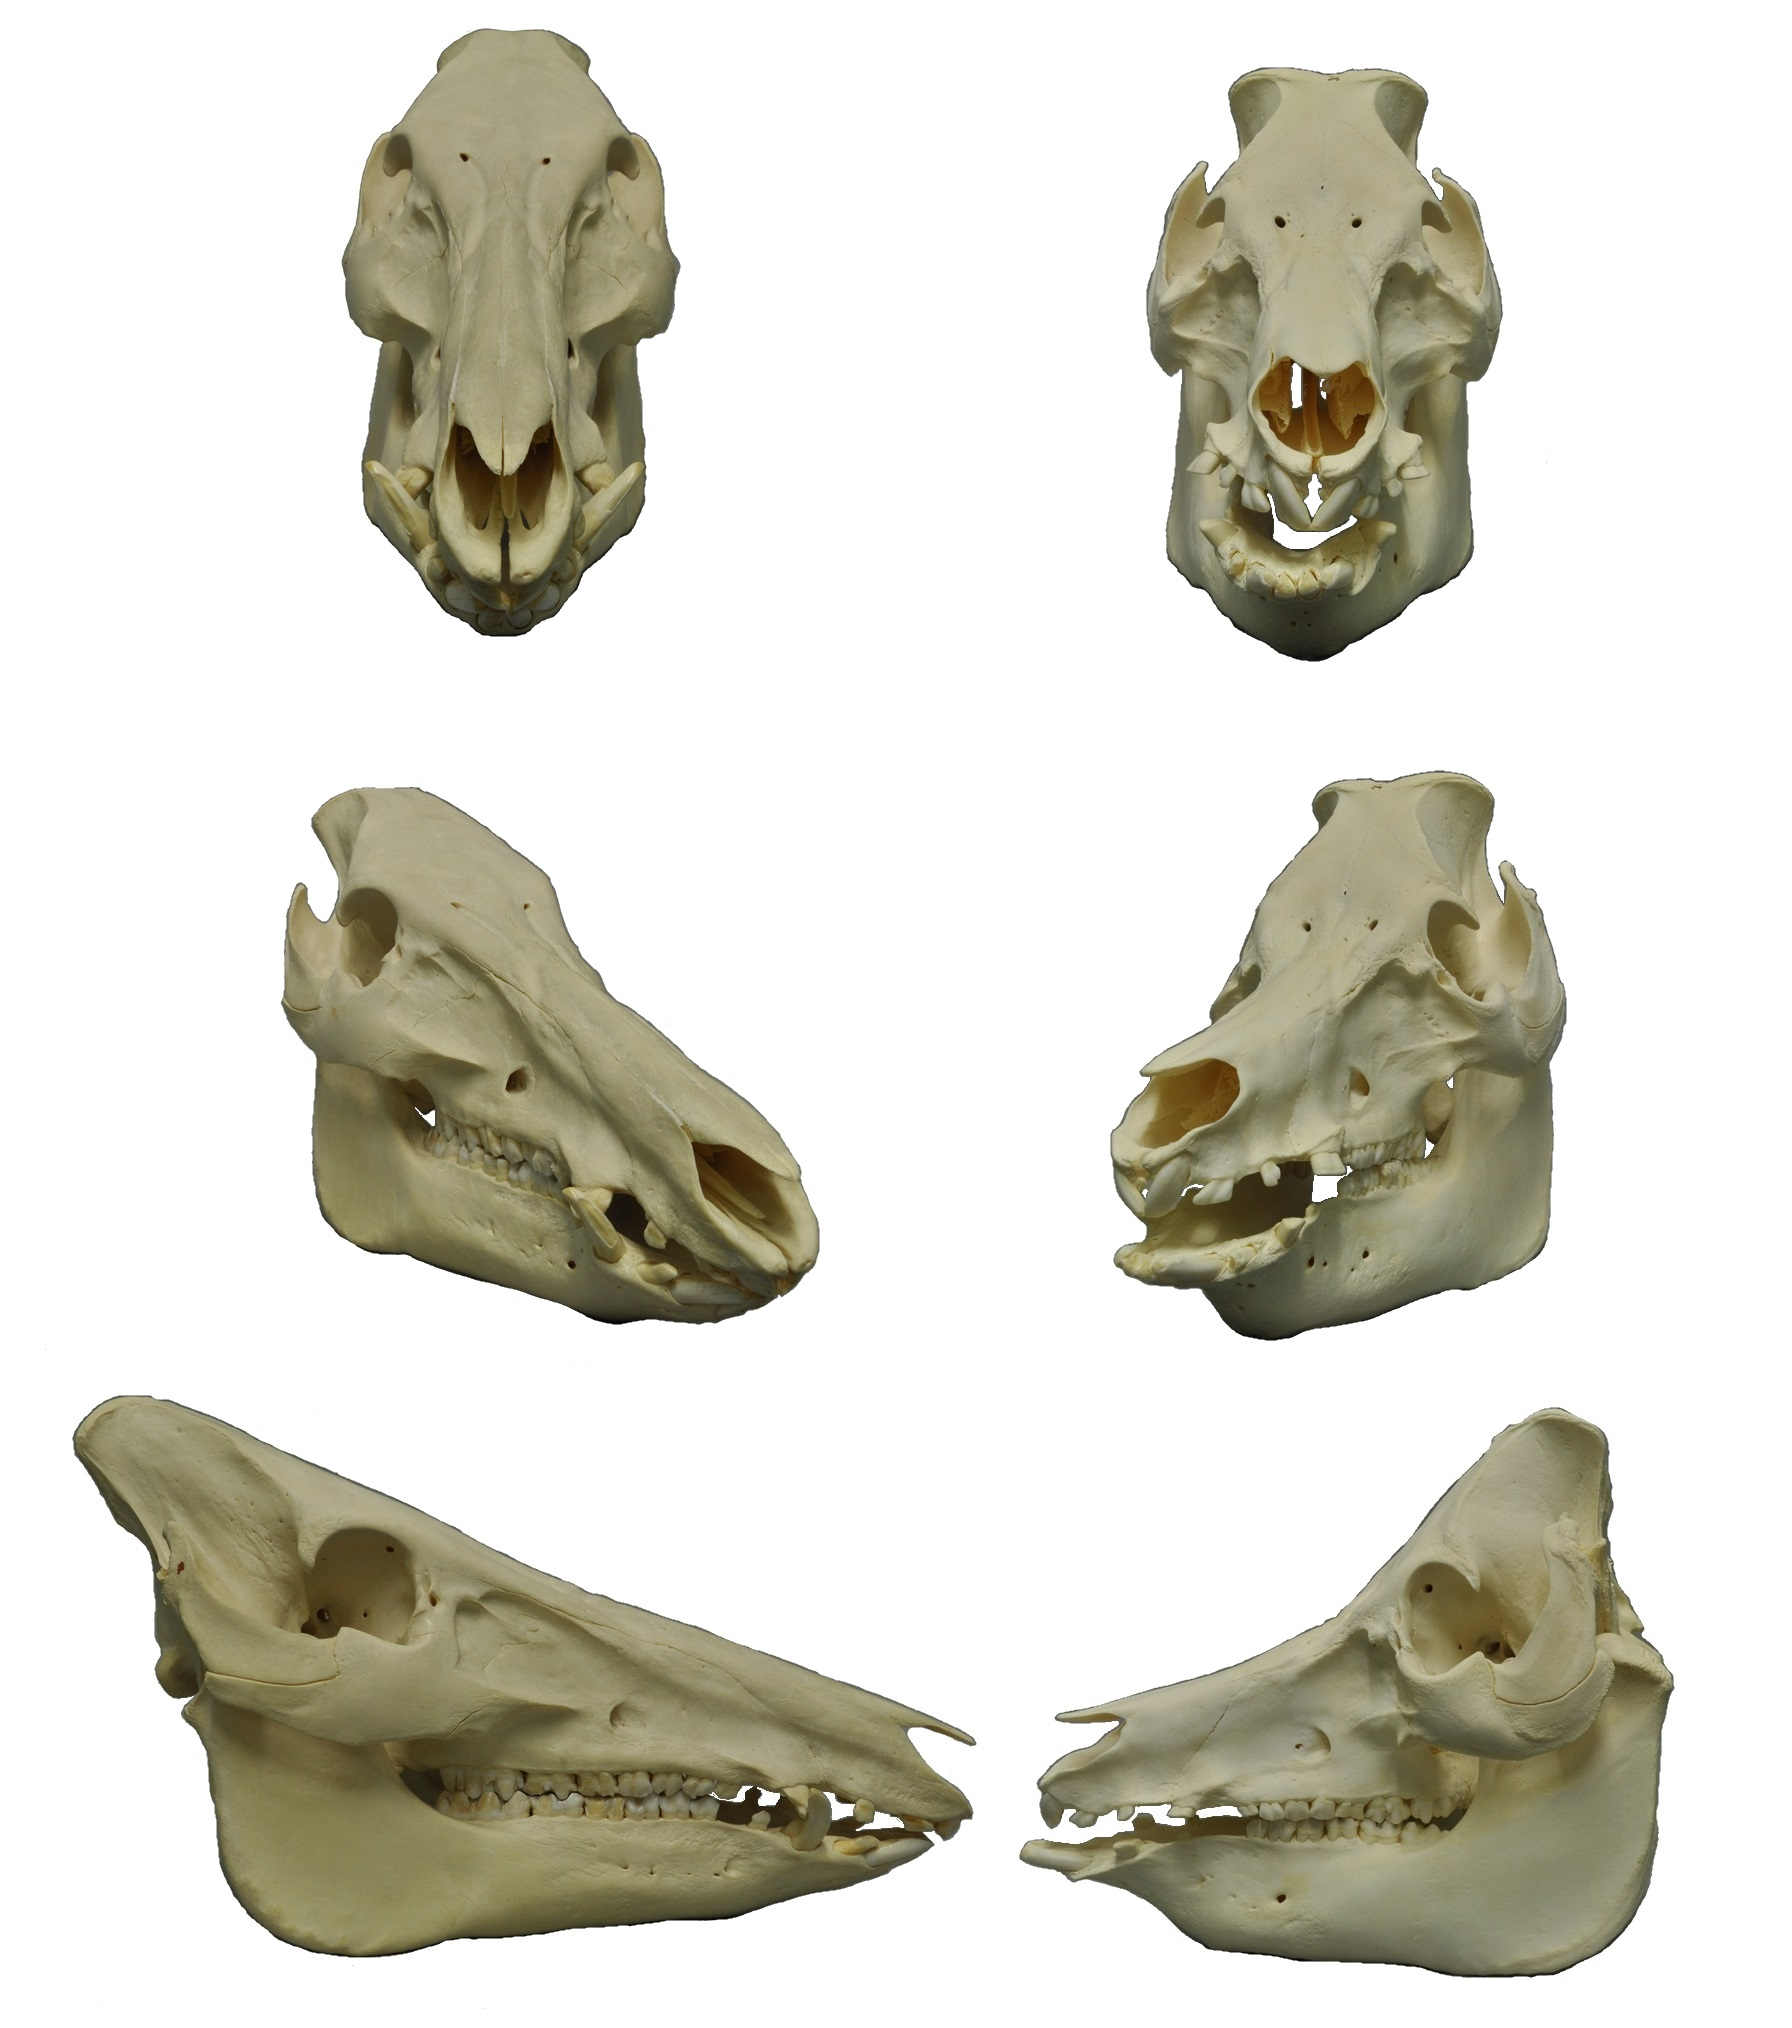 Wild Boar Left And Domestic Pig Right Skulls Note The Greatly Shortened Facial Region Of The Latter